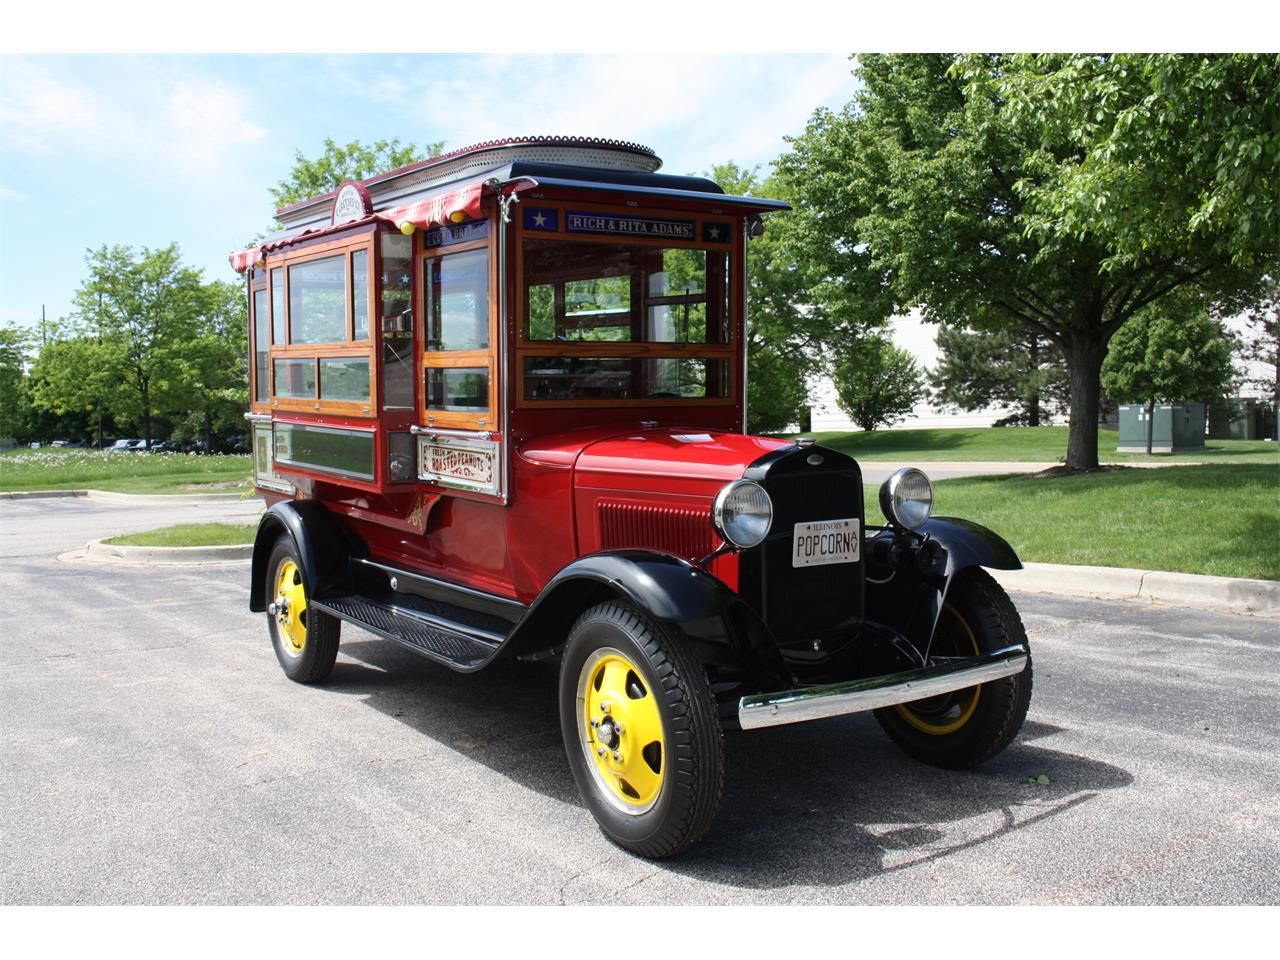 Large Picture of 1930 Ford Pickup Auction Vehicle Offered by Aumann Auctions - OD5B